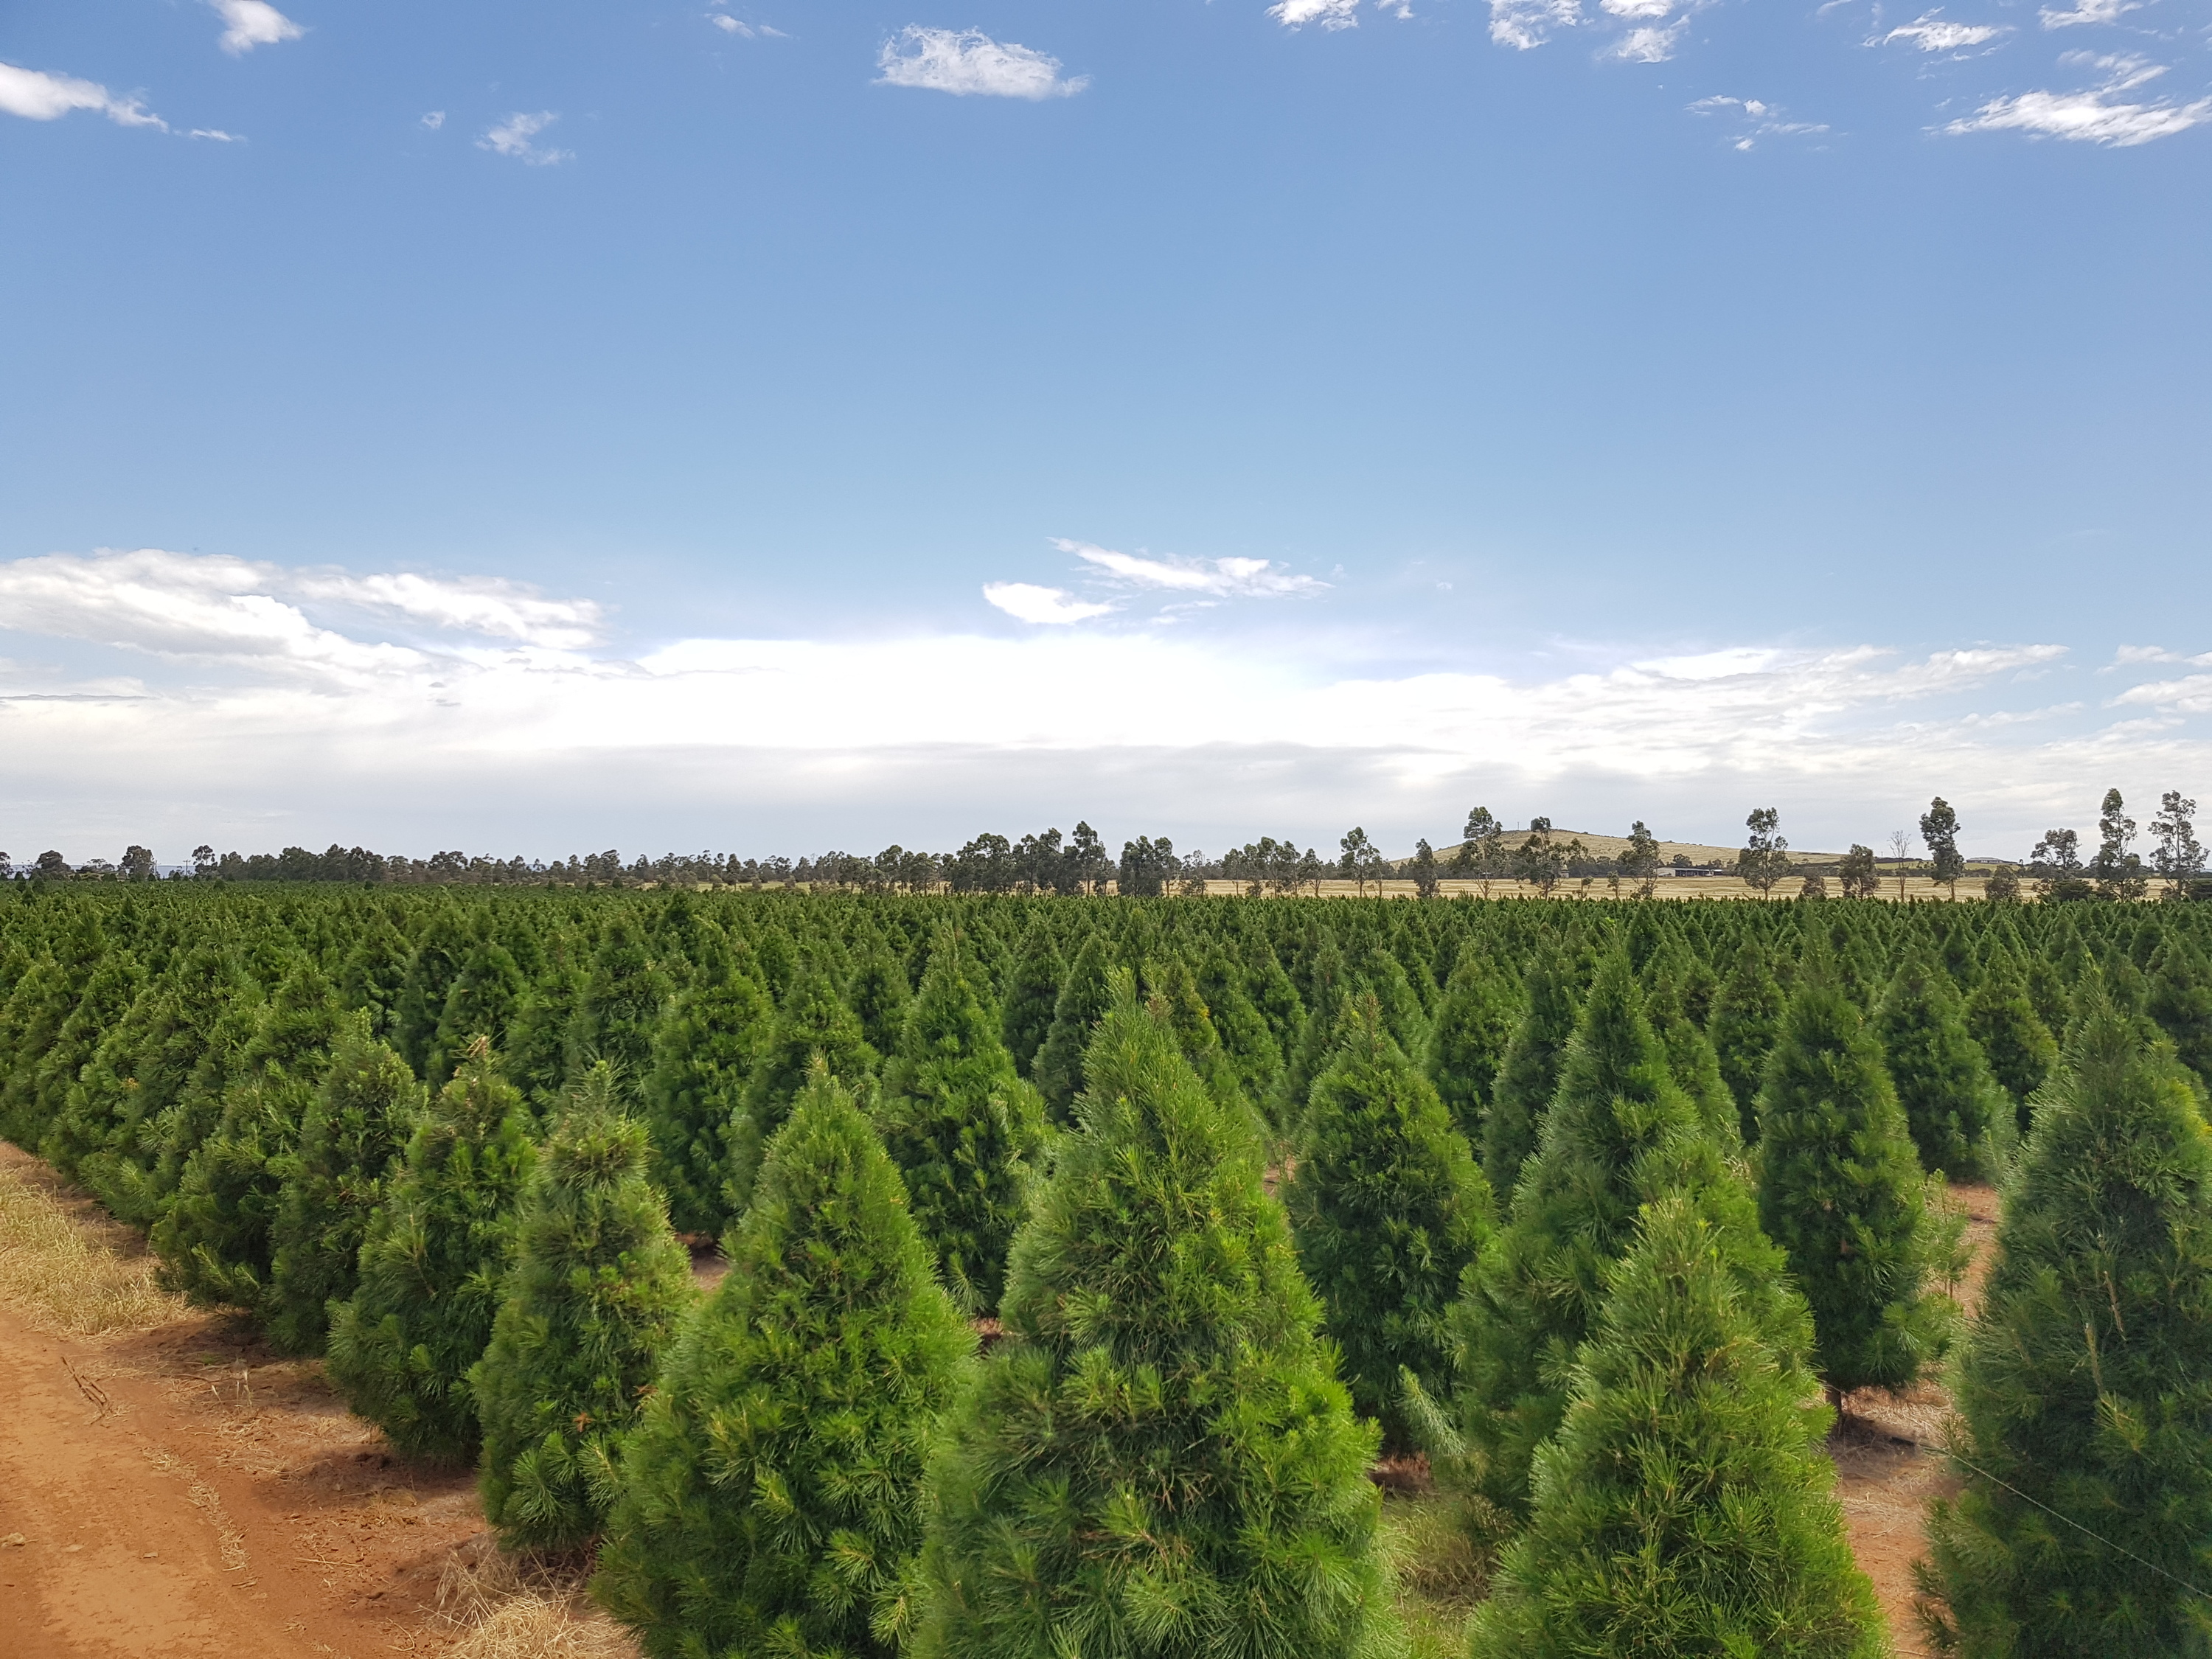 A field of small christmas trees